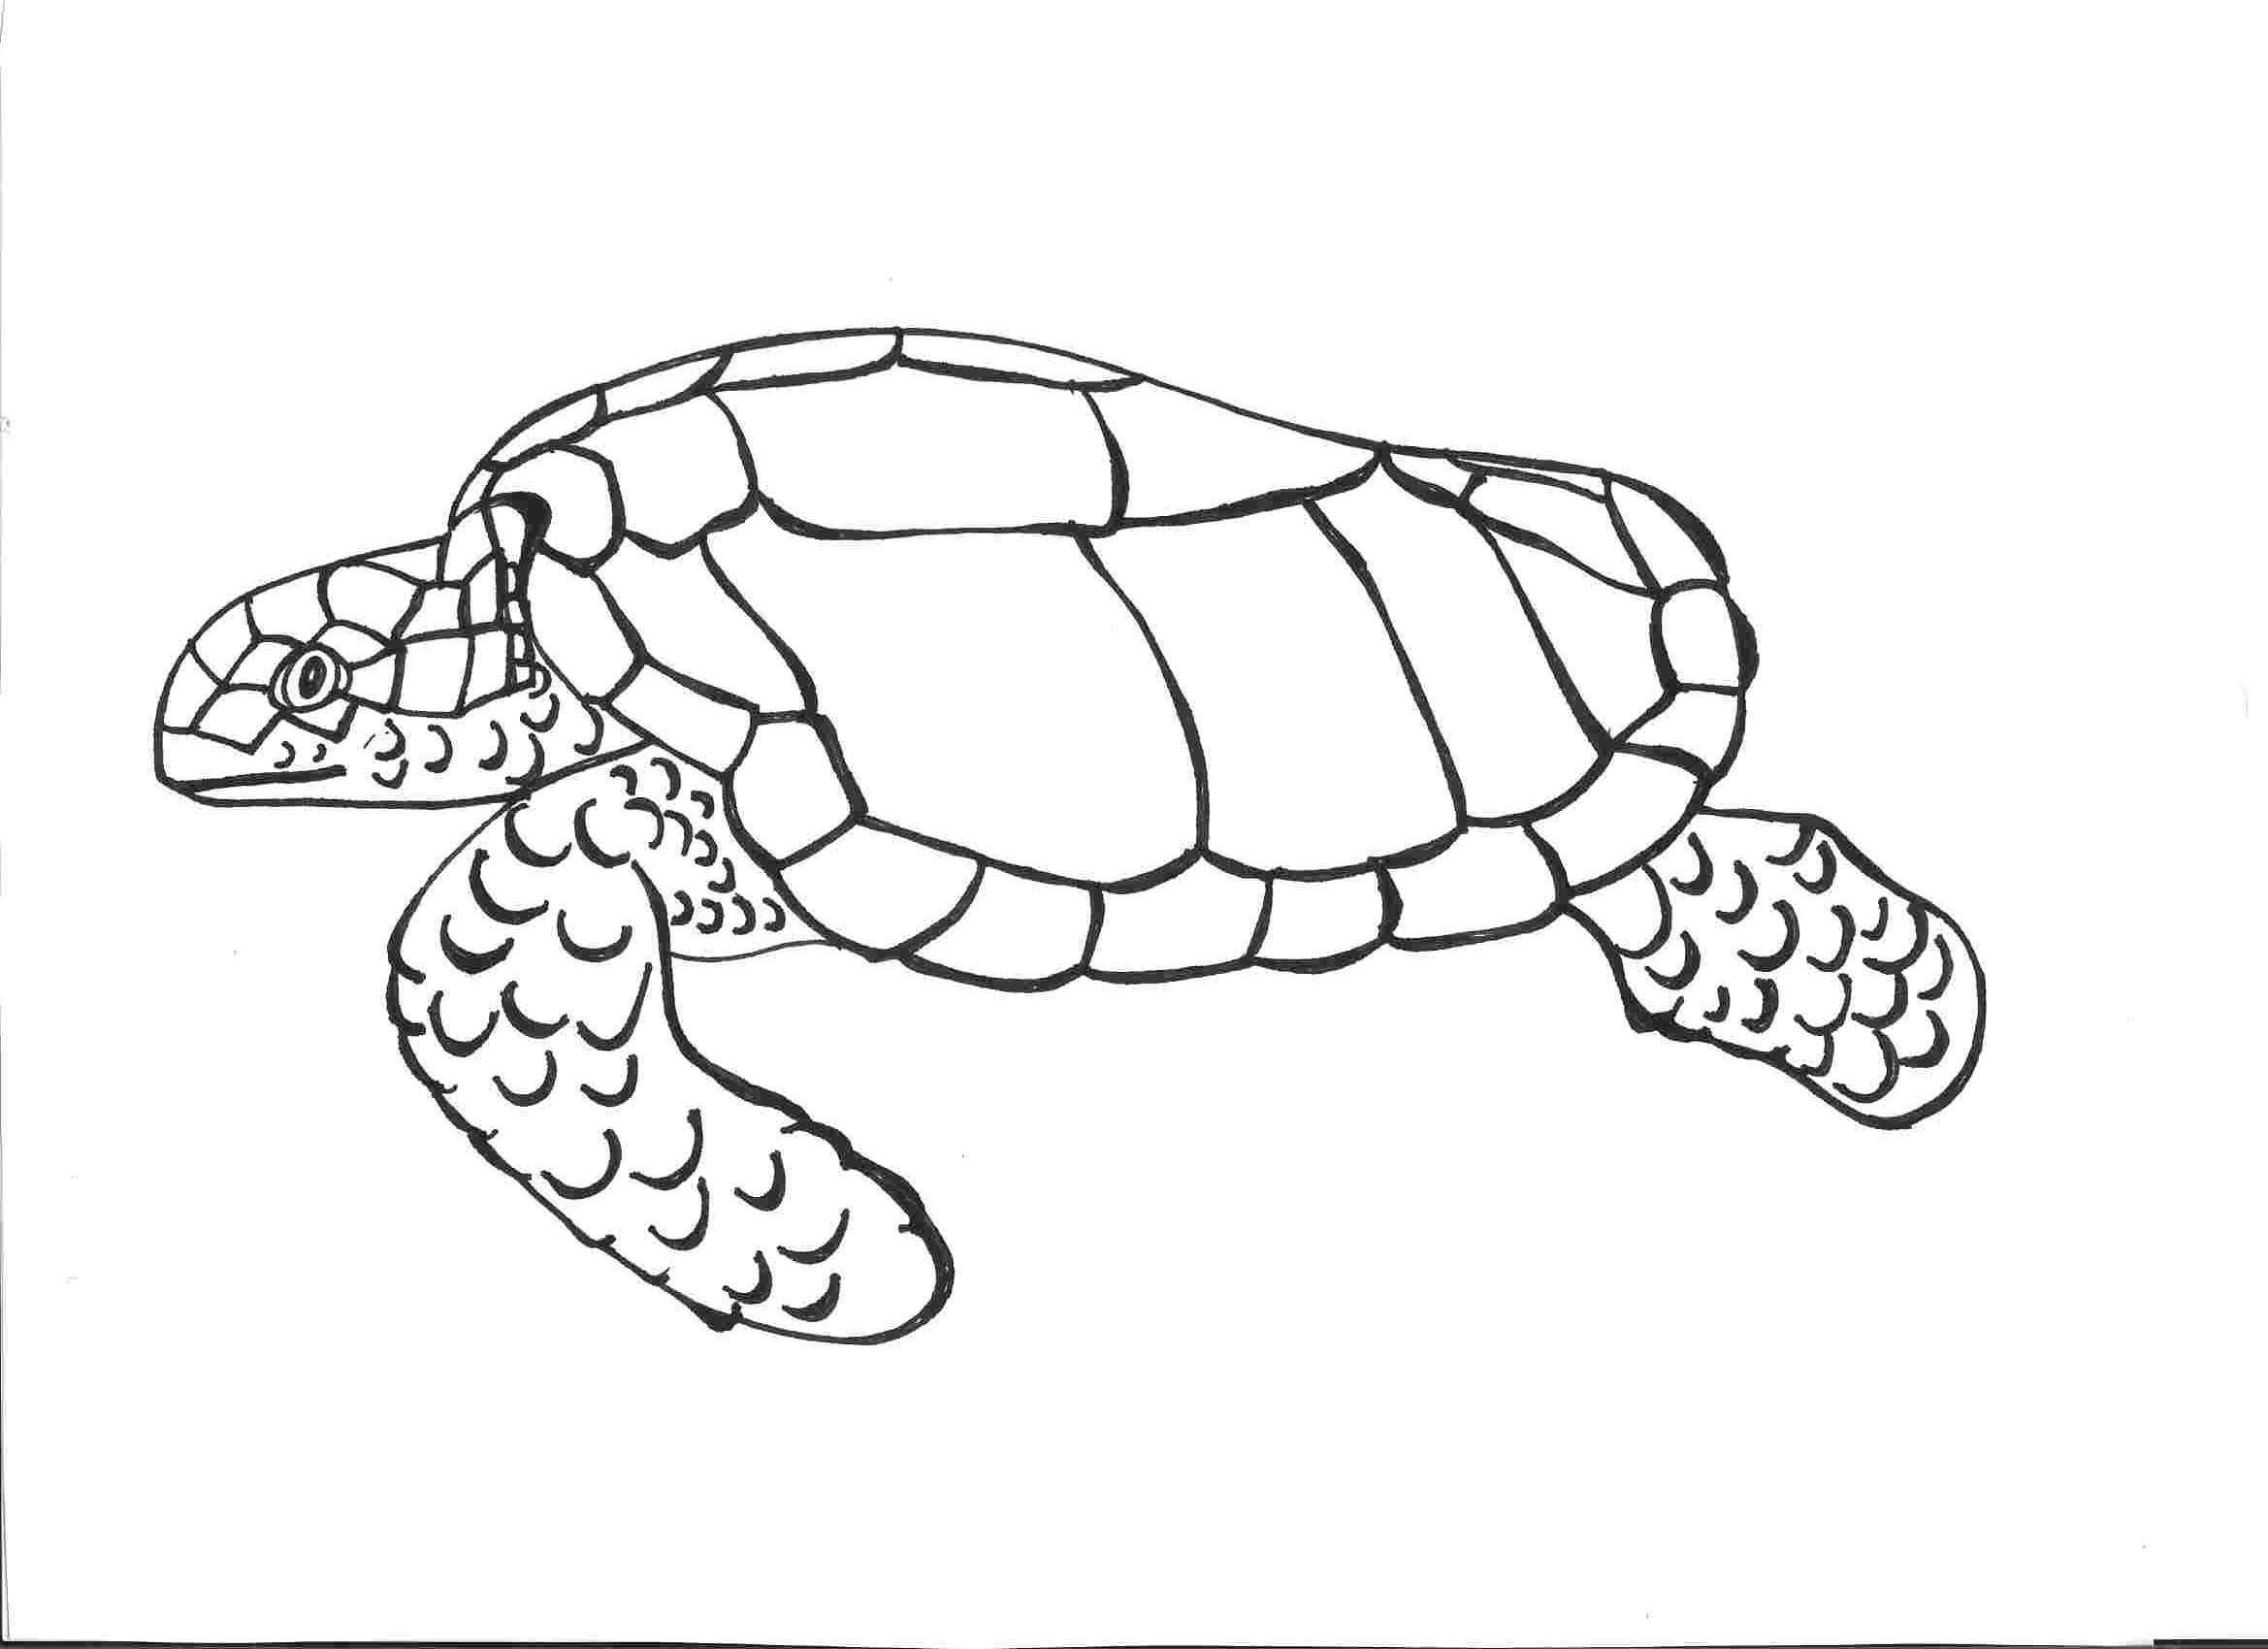 snapping turtle coloring pages fun coloring pages